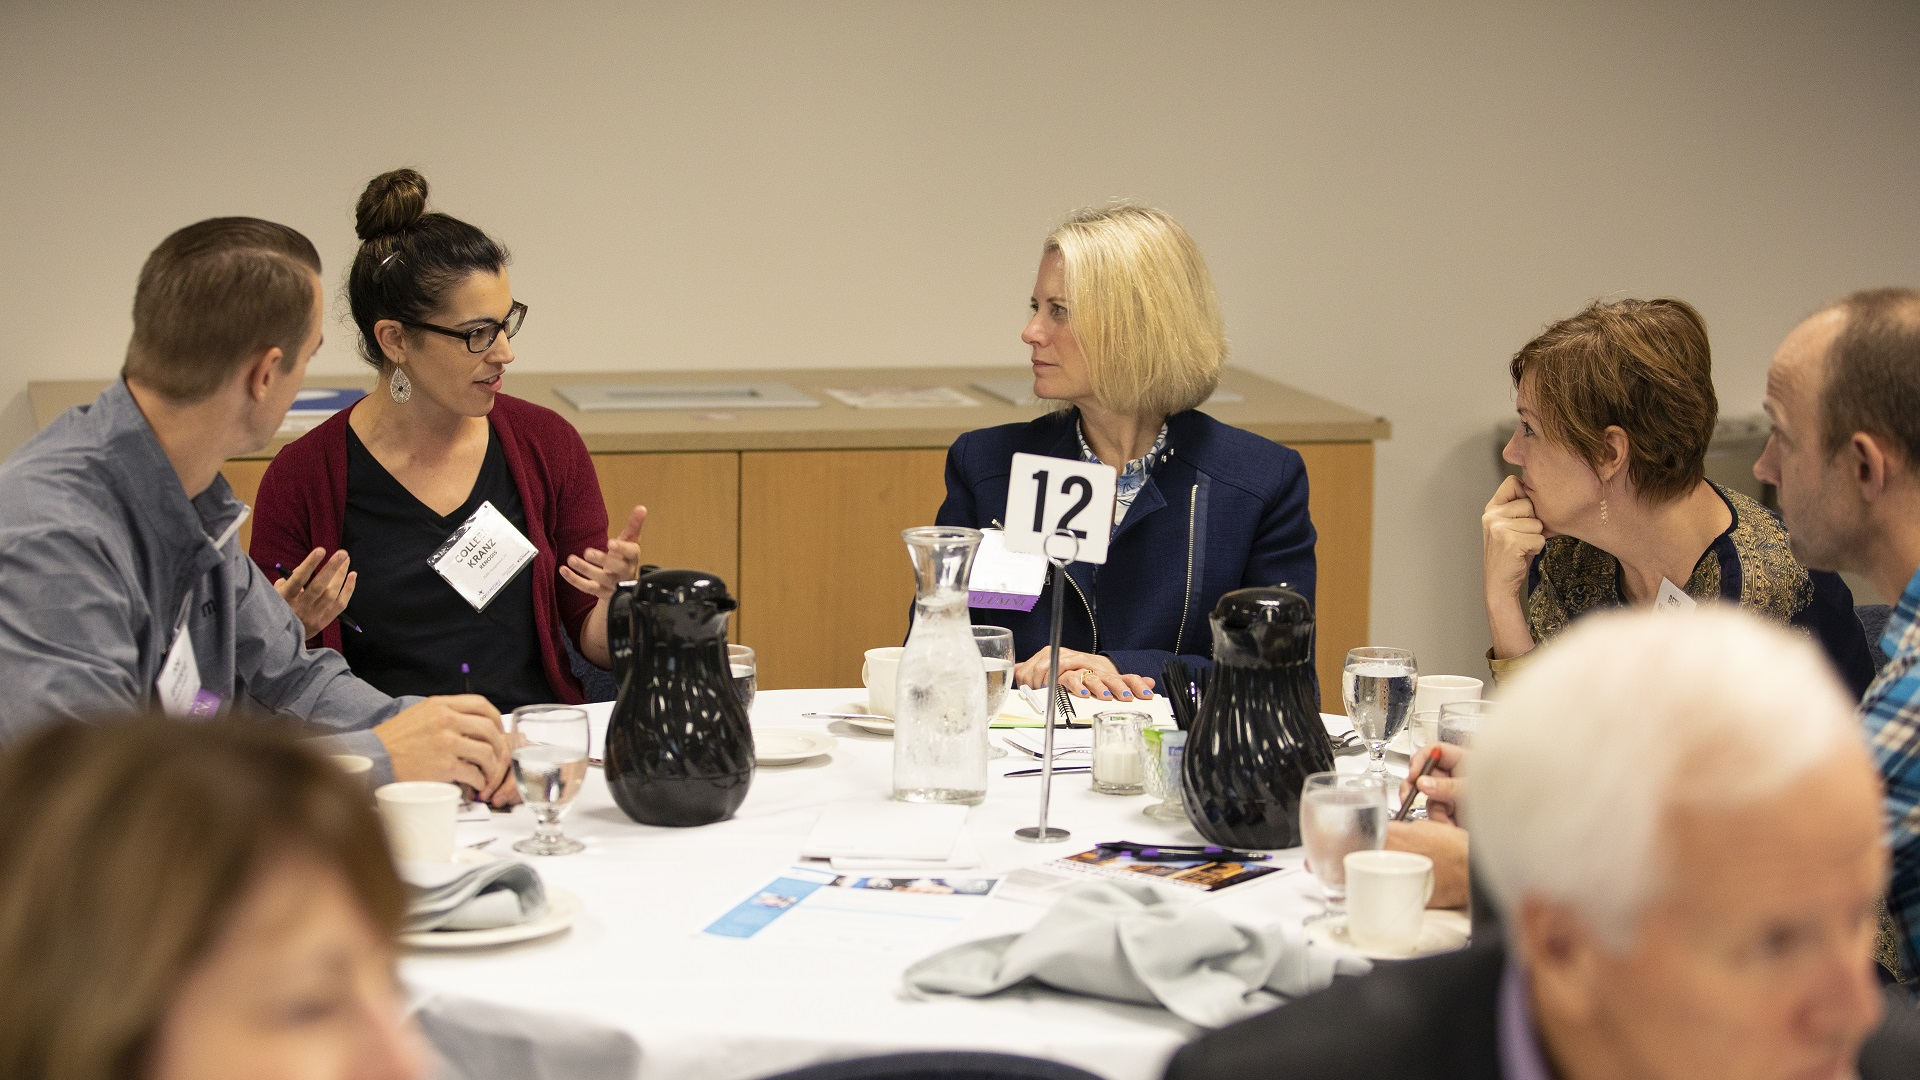 Event participants discuss a topic amongst themselves at a table